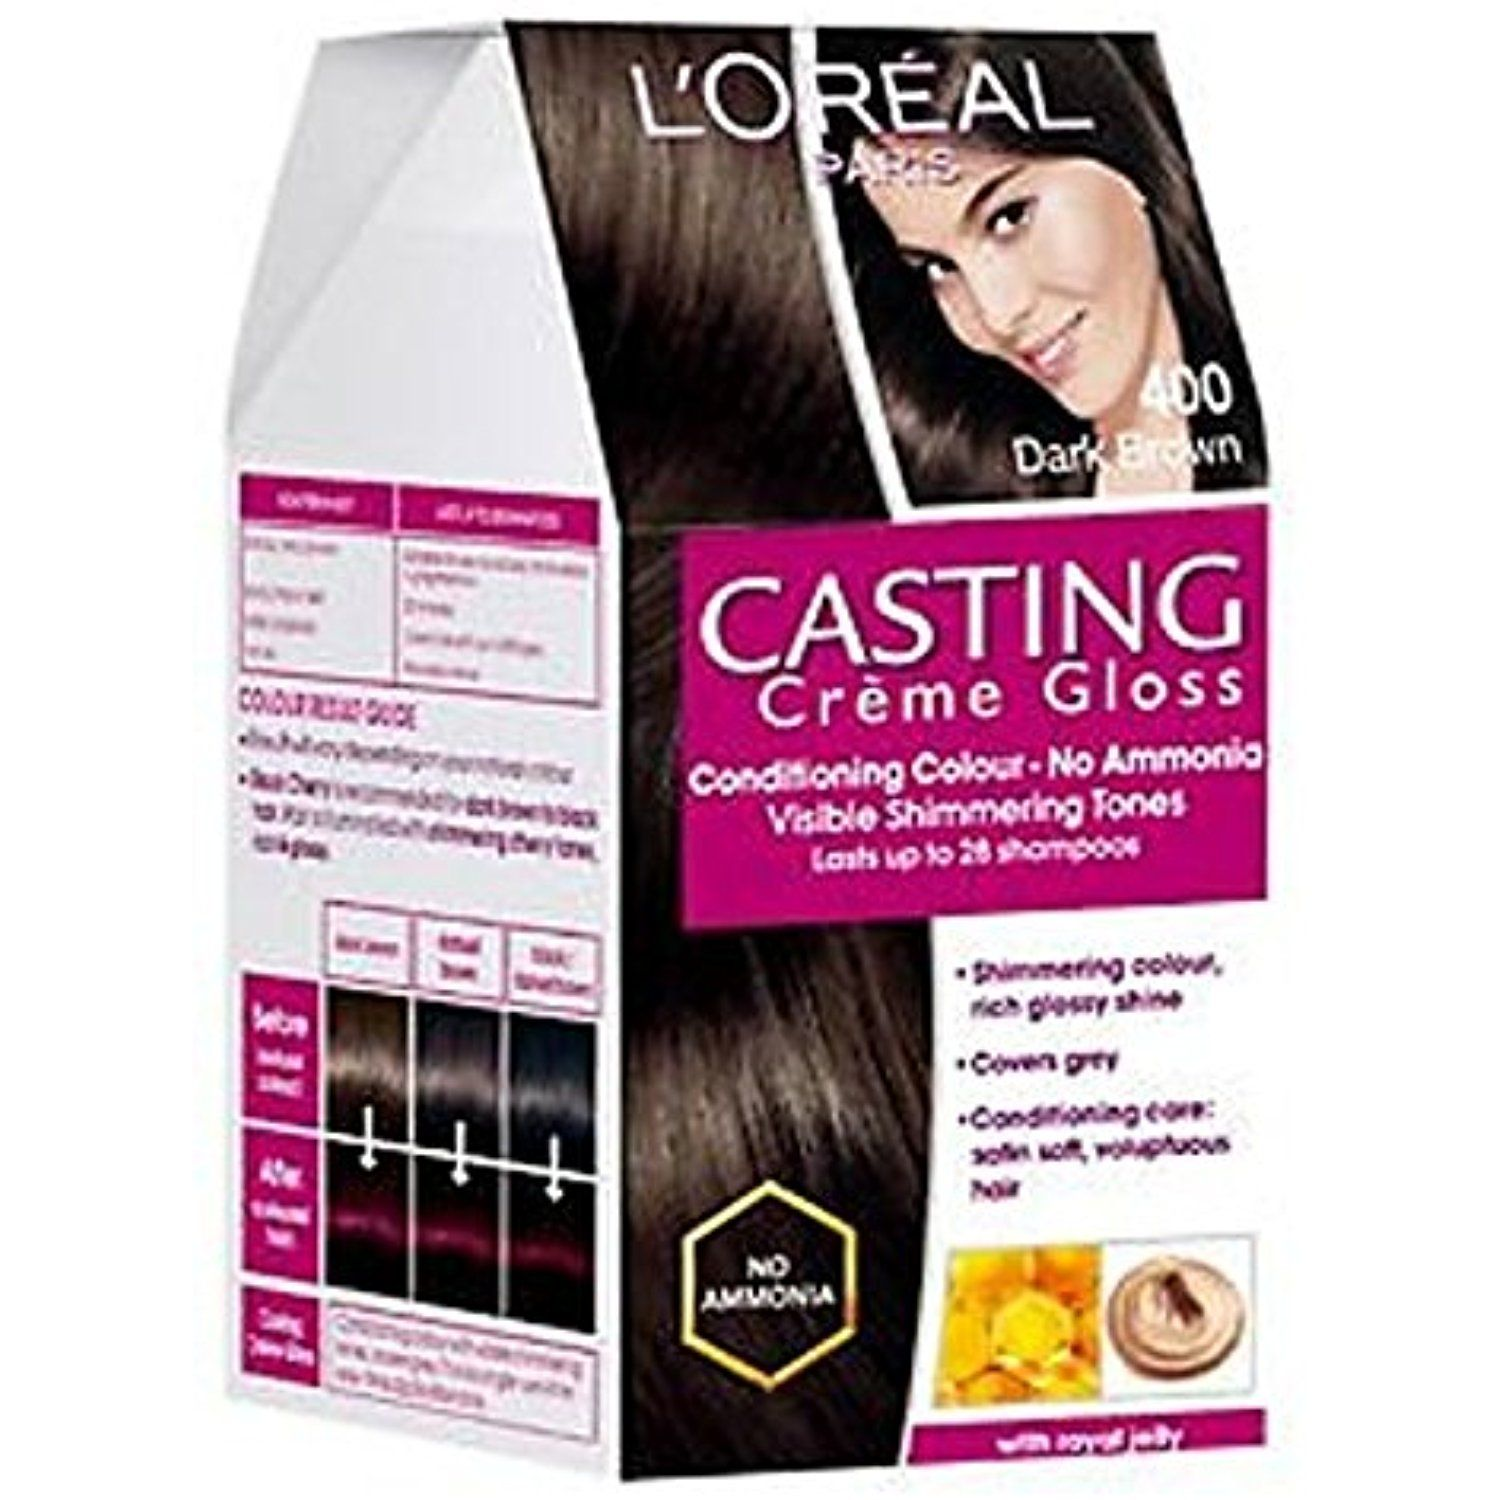 Loreal Casting Creme Gloss Hair Color Dark Brown 400 You Can